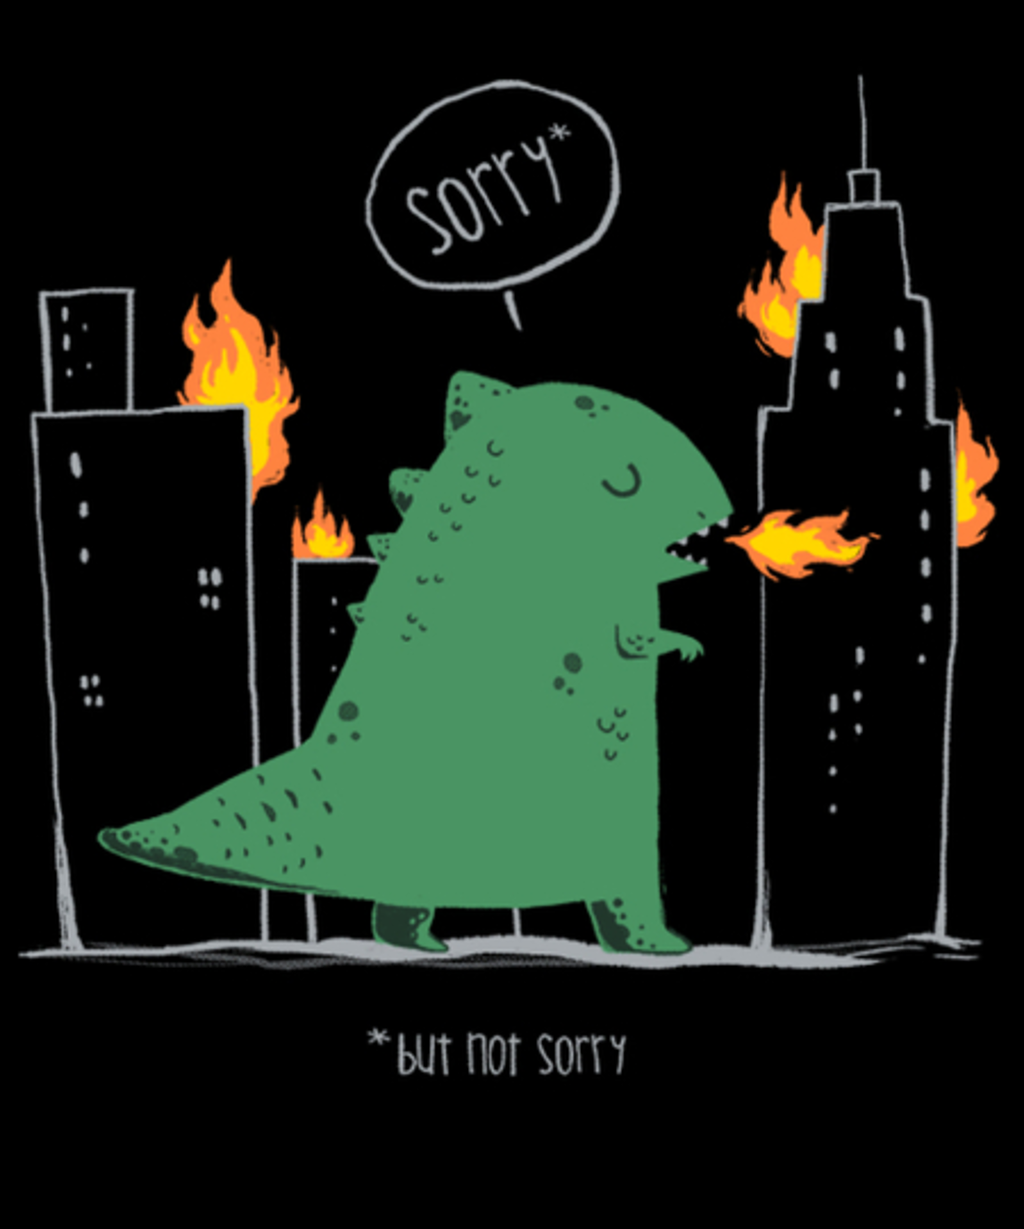 Qwertee: Sorry, but not sorry.